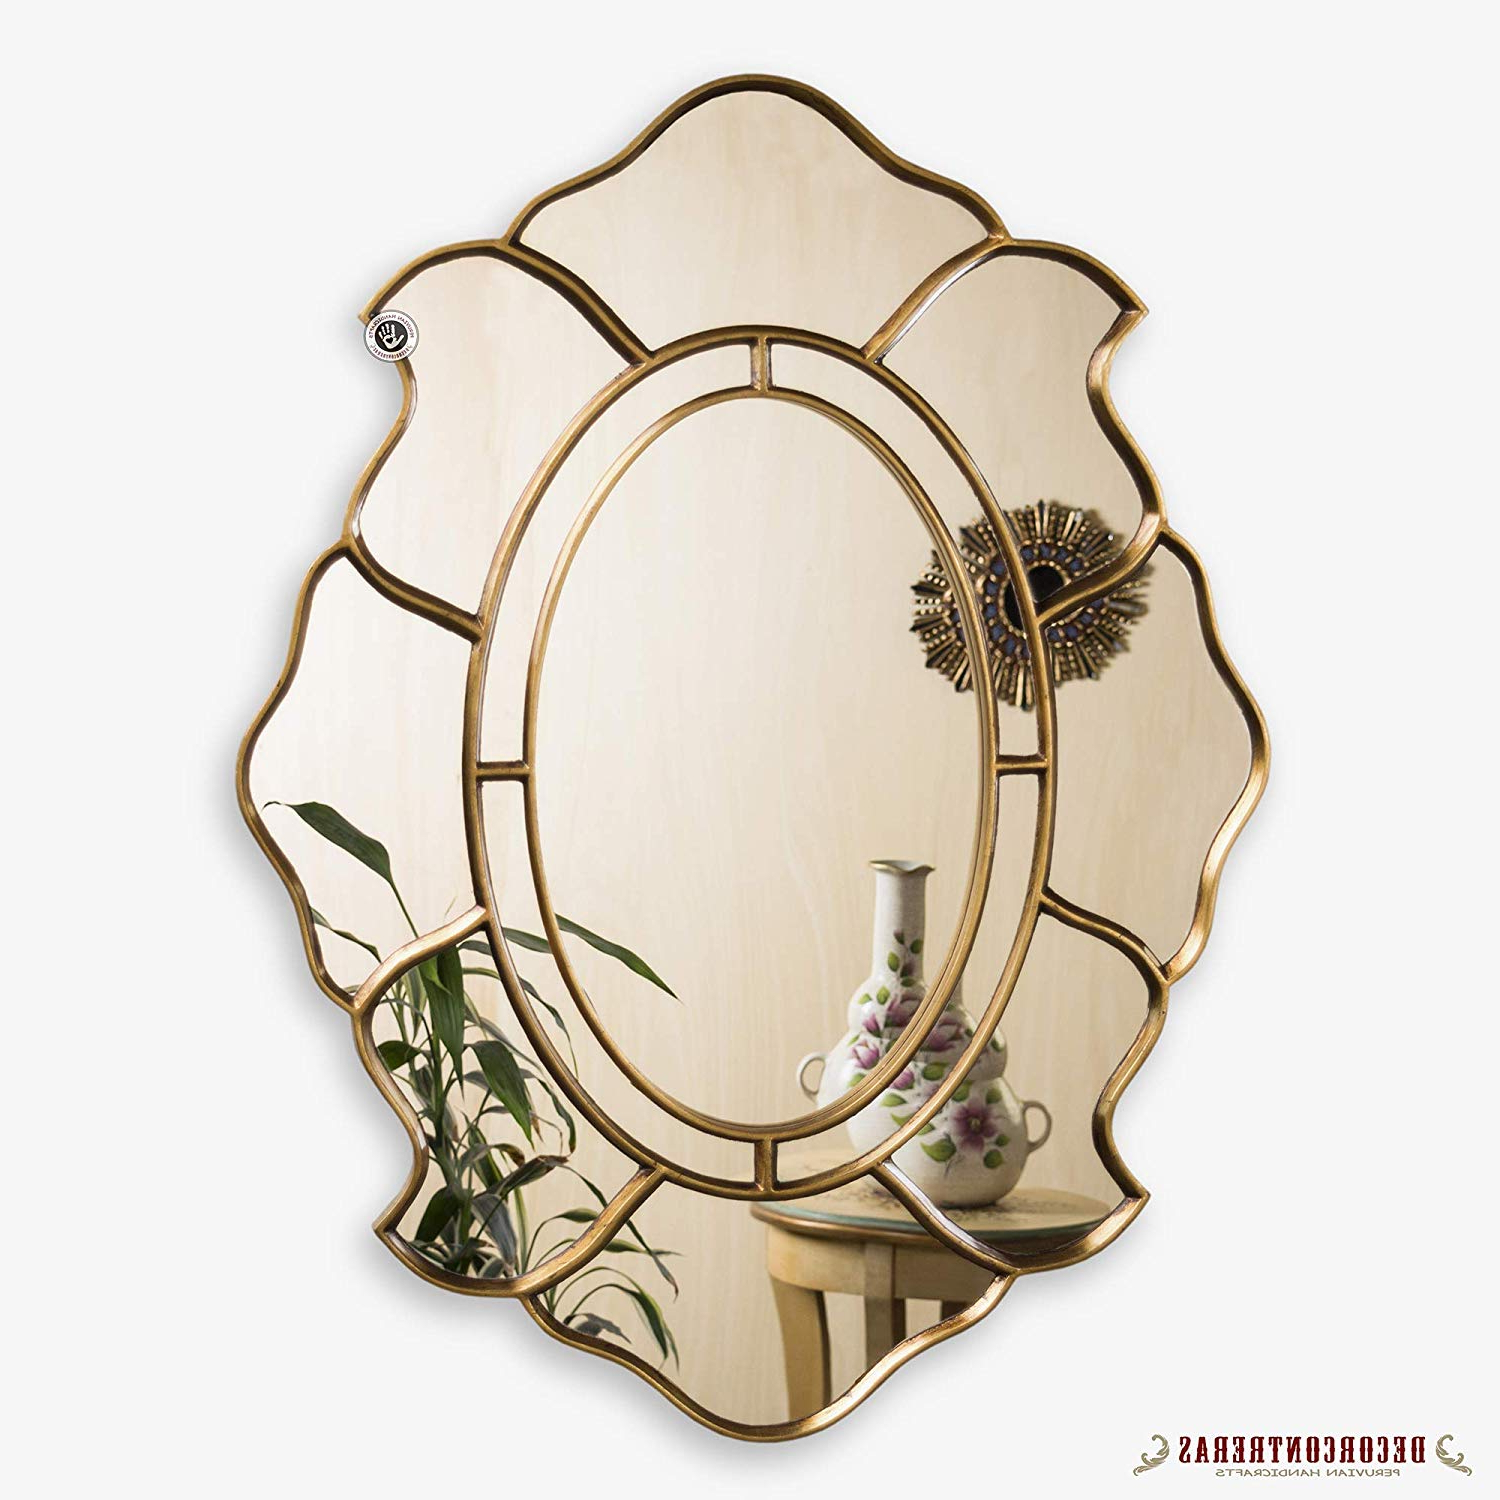 Well Known Accent Mirrors In Amazon: Gold Oval Accent Wall Mirror, Decorative Oval Mirror For (View 19 of 20)